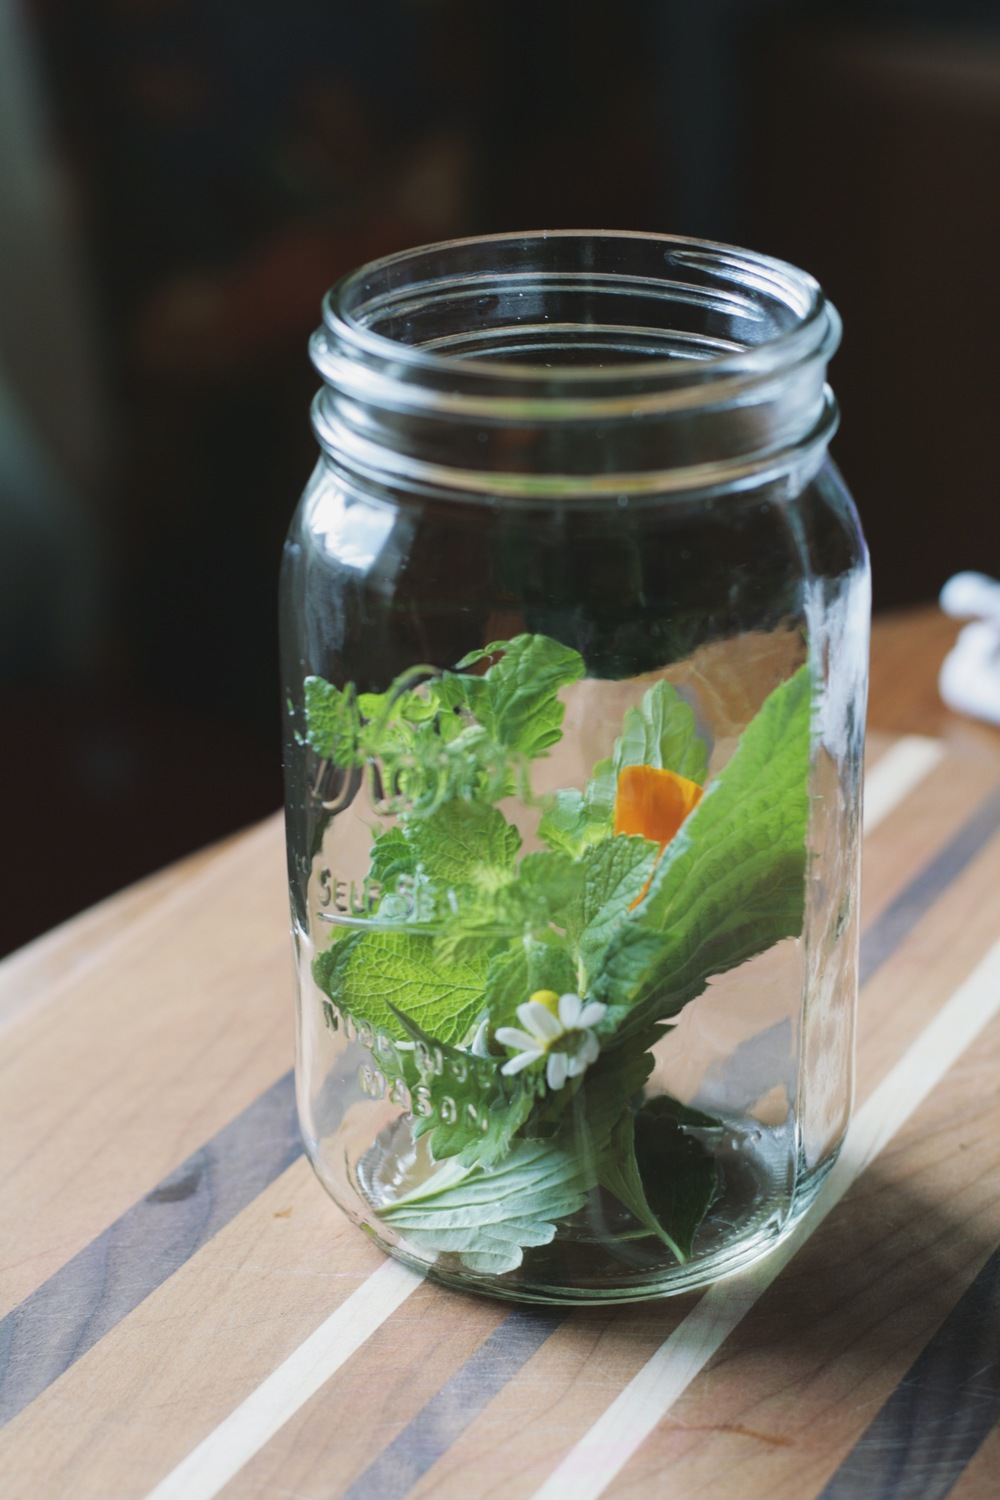 I love to use mason jars for tisane - the herbs and flowers are visible and you can sip the brew from the jar